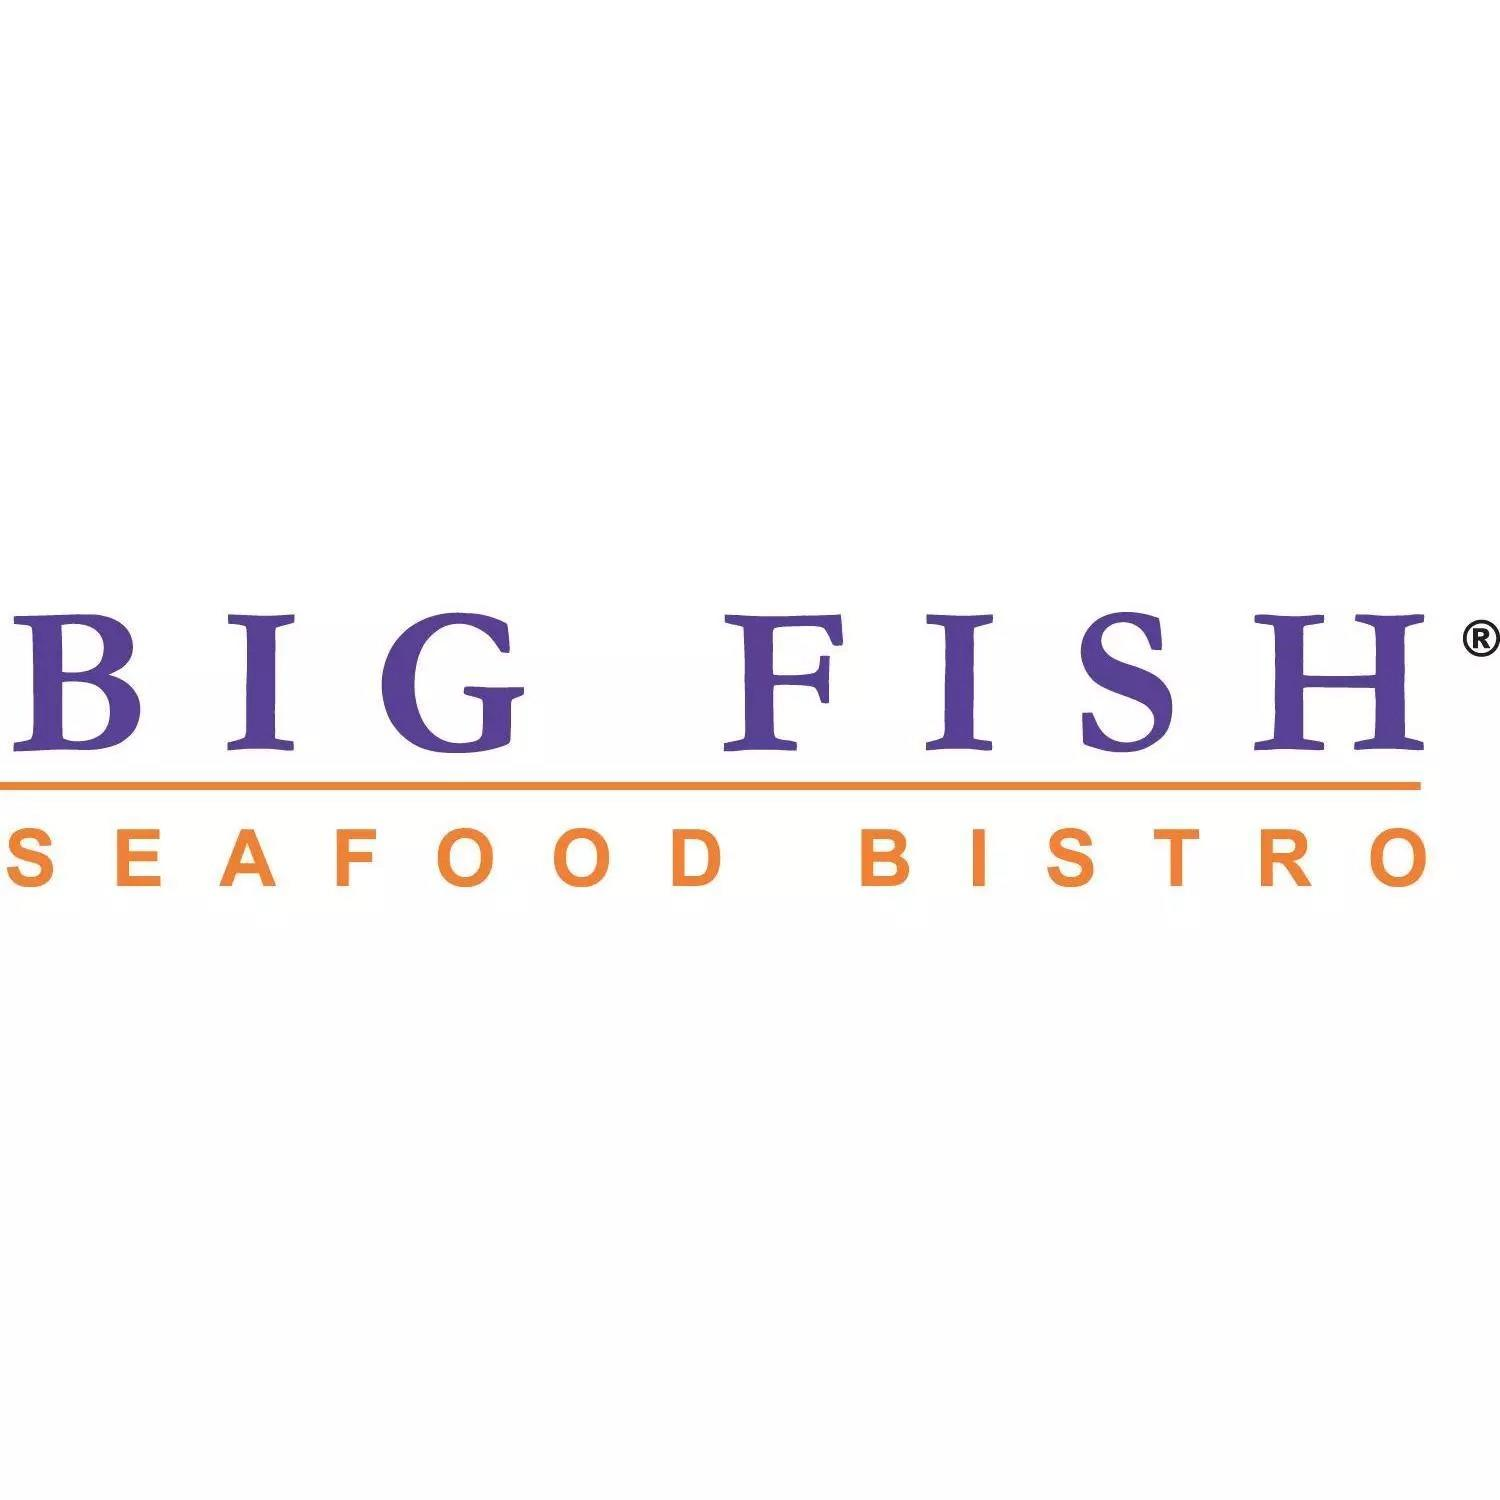 Big Fish Seafood Bistro